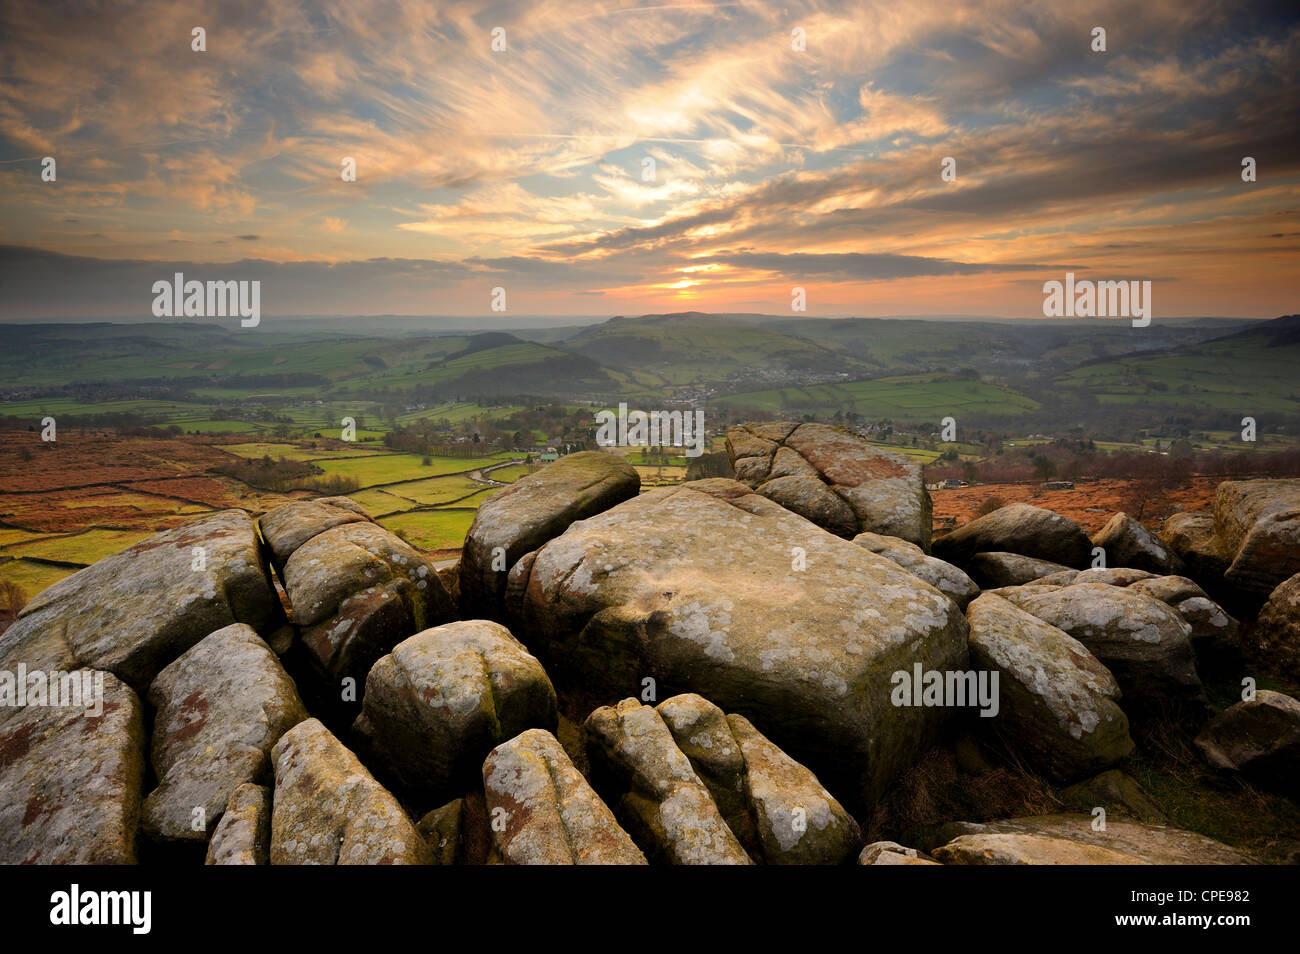 Sunset over Baslow, Curbar Edge, Peak District National Park, Derbyshire, England, United Kingdom, Europe - Stock Image